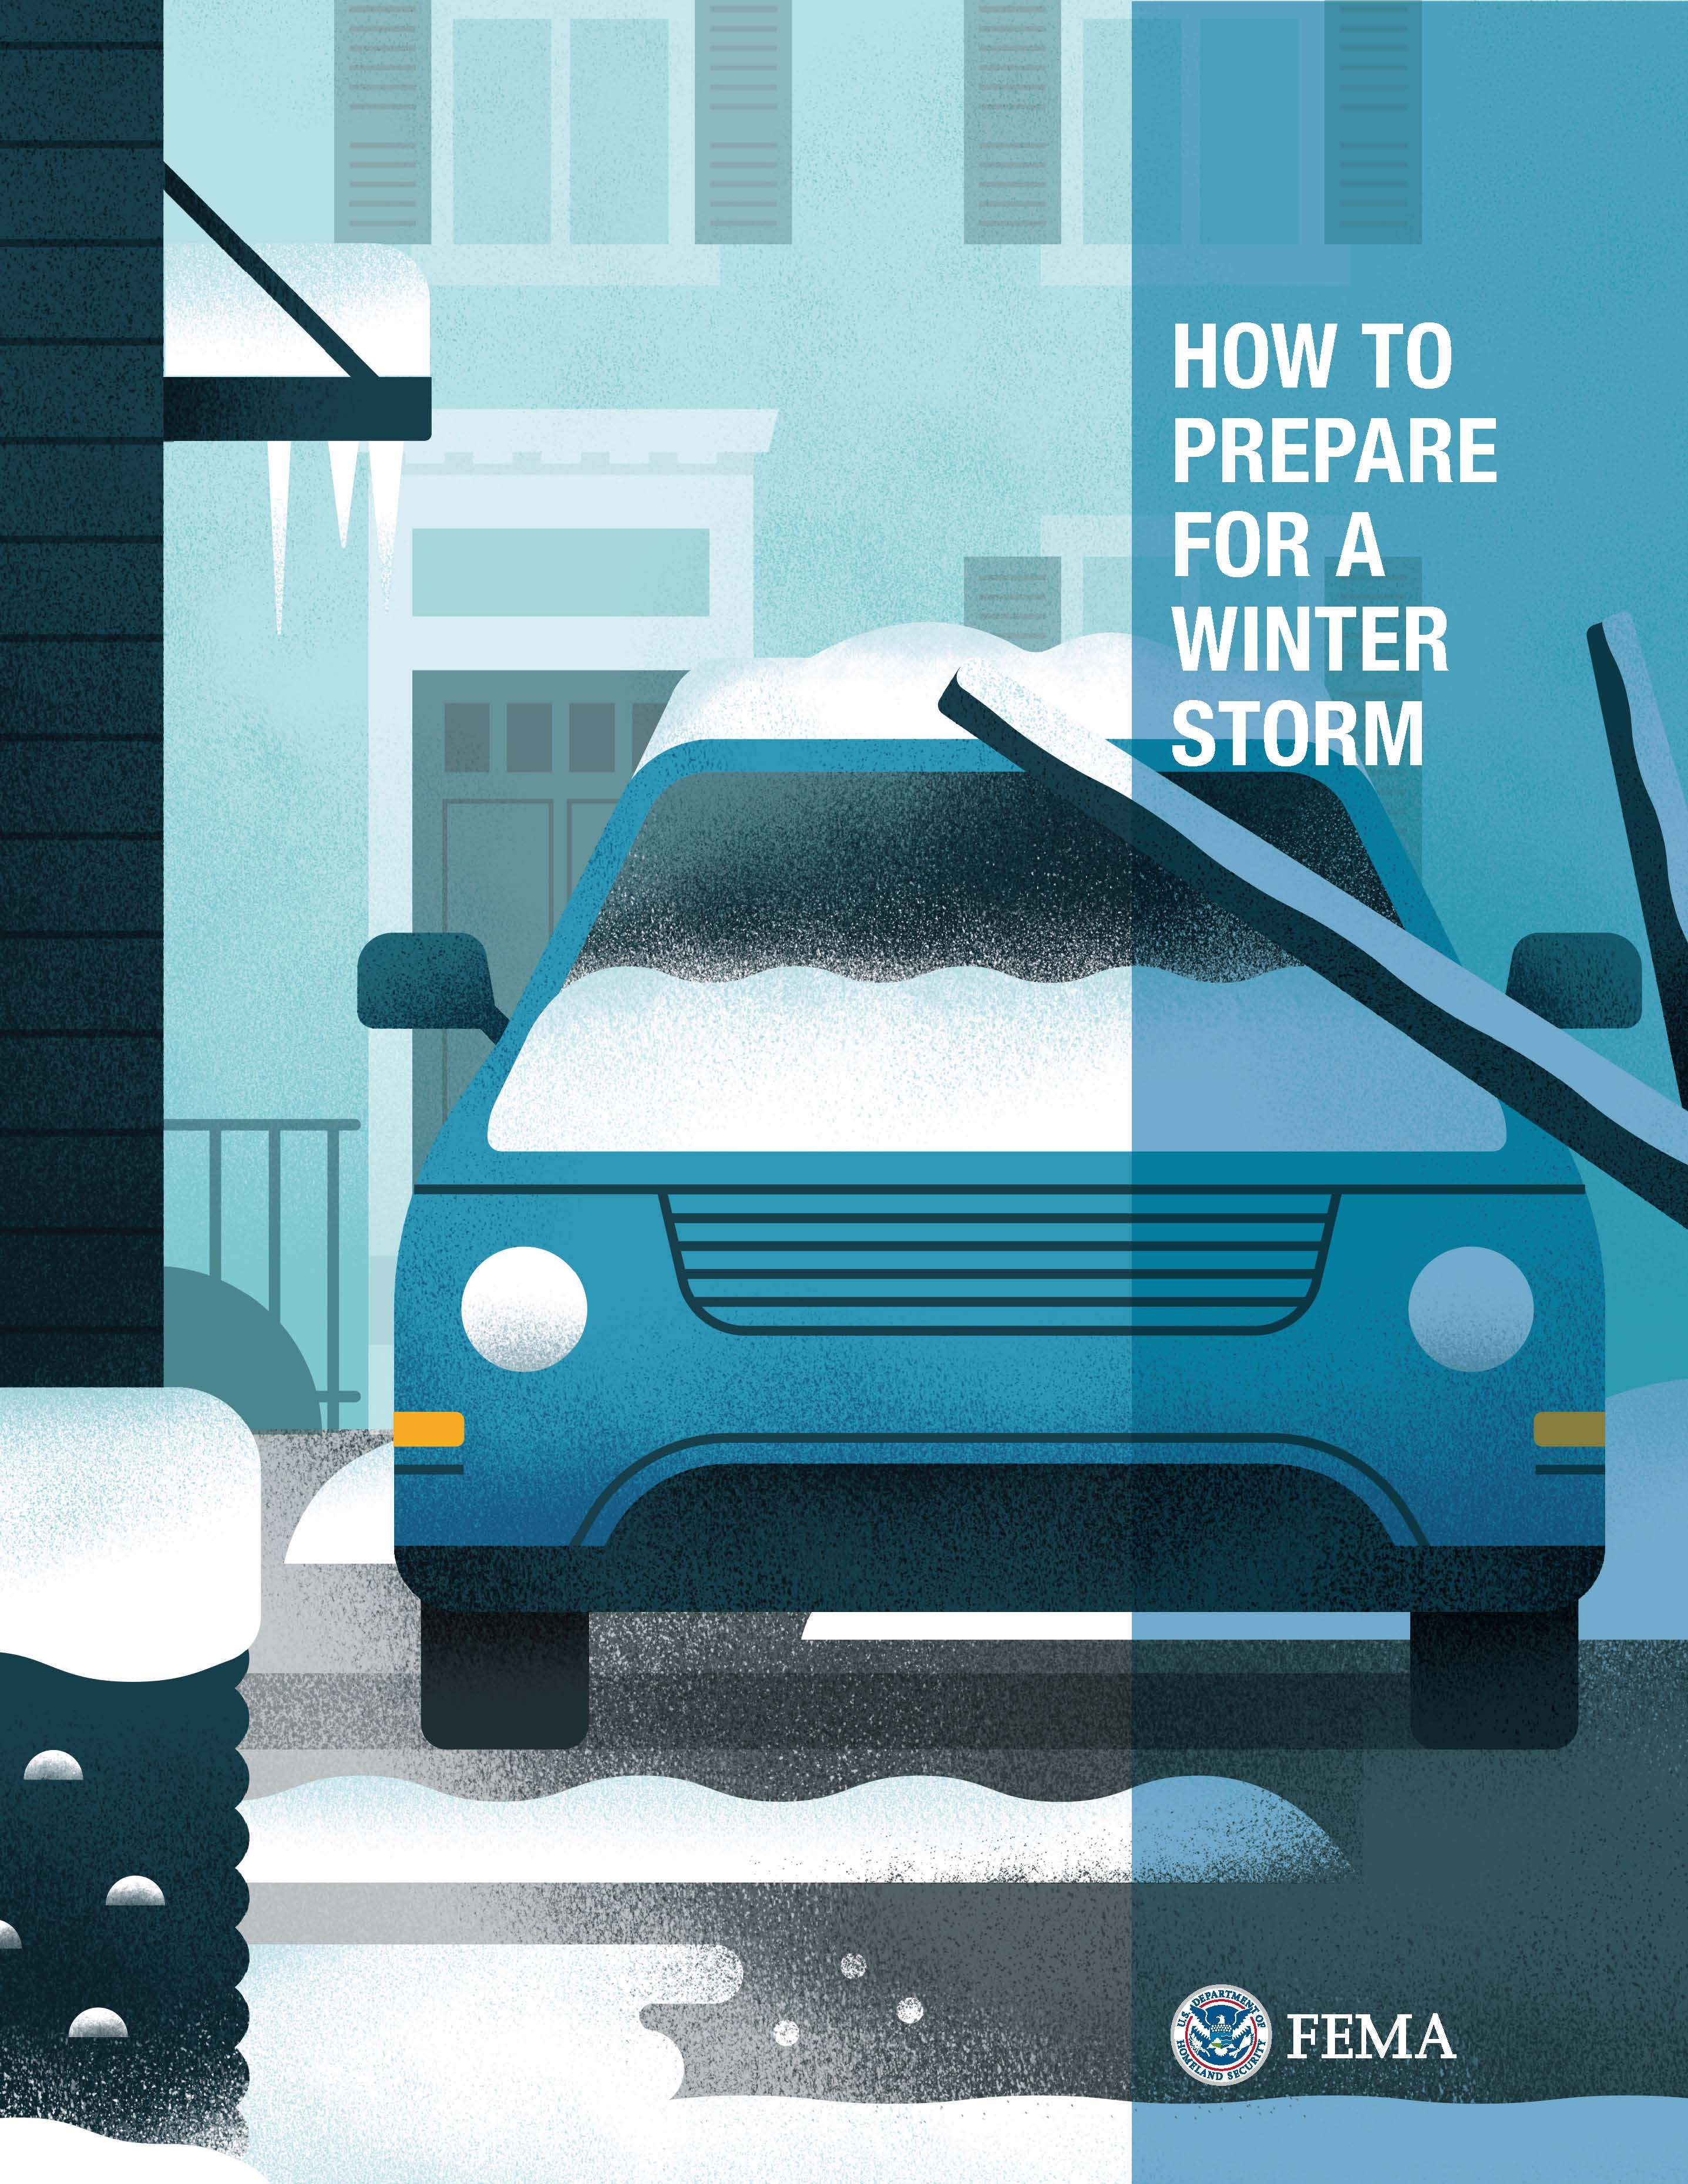 FEMA How to Prepare for a Winter Storm Opens in new window